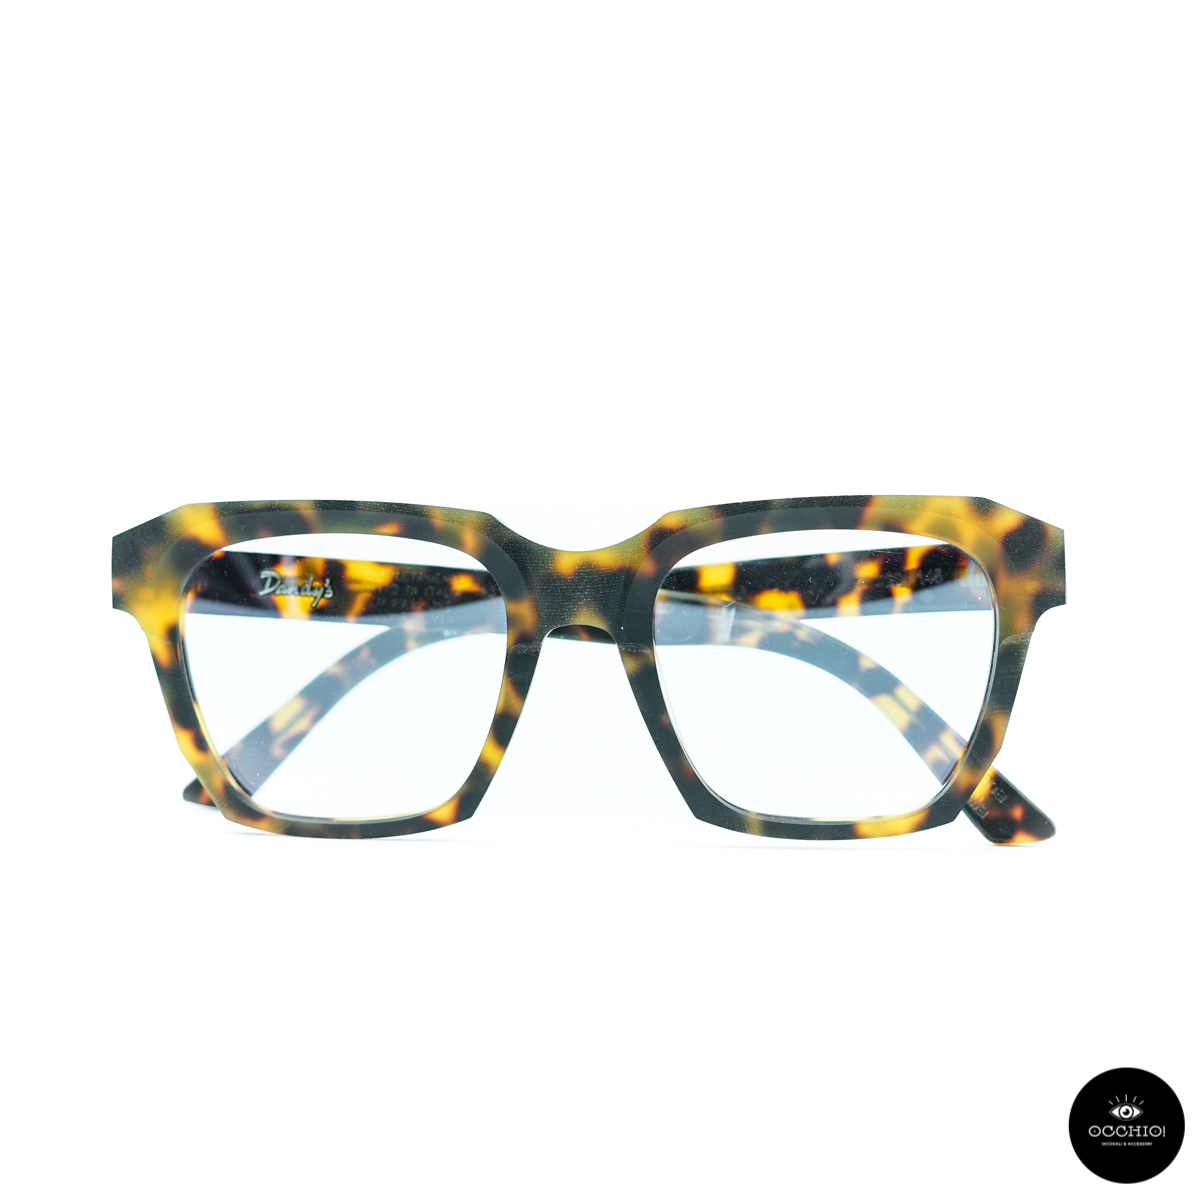 Dandy's eyewear Fobico Avana Gialla, Rough Version